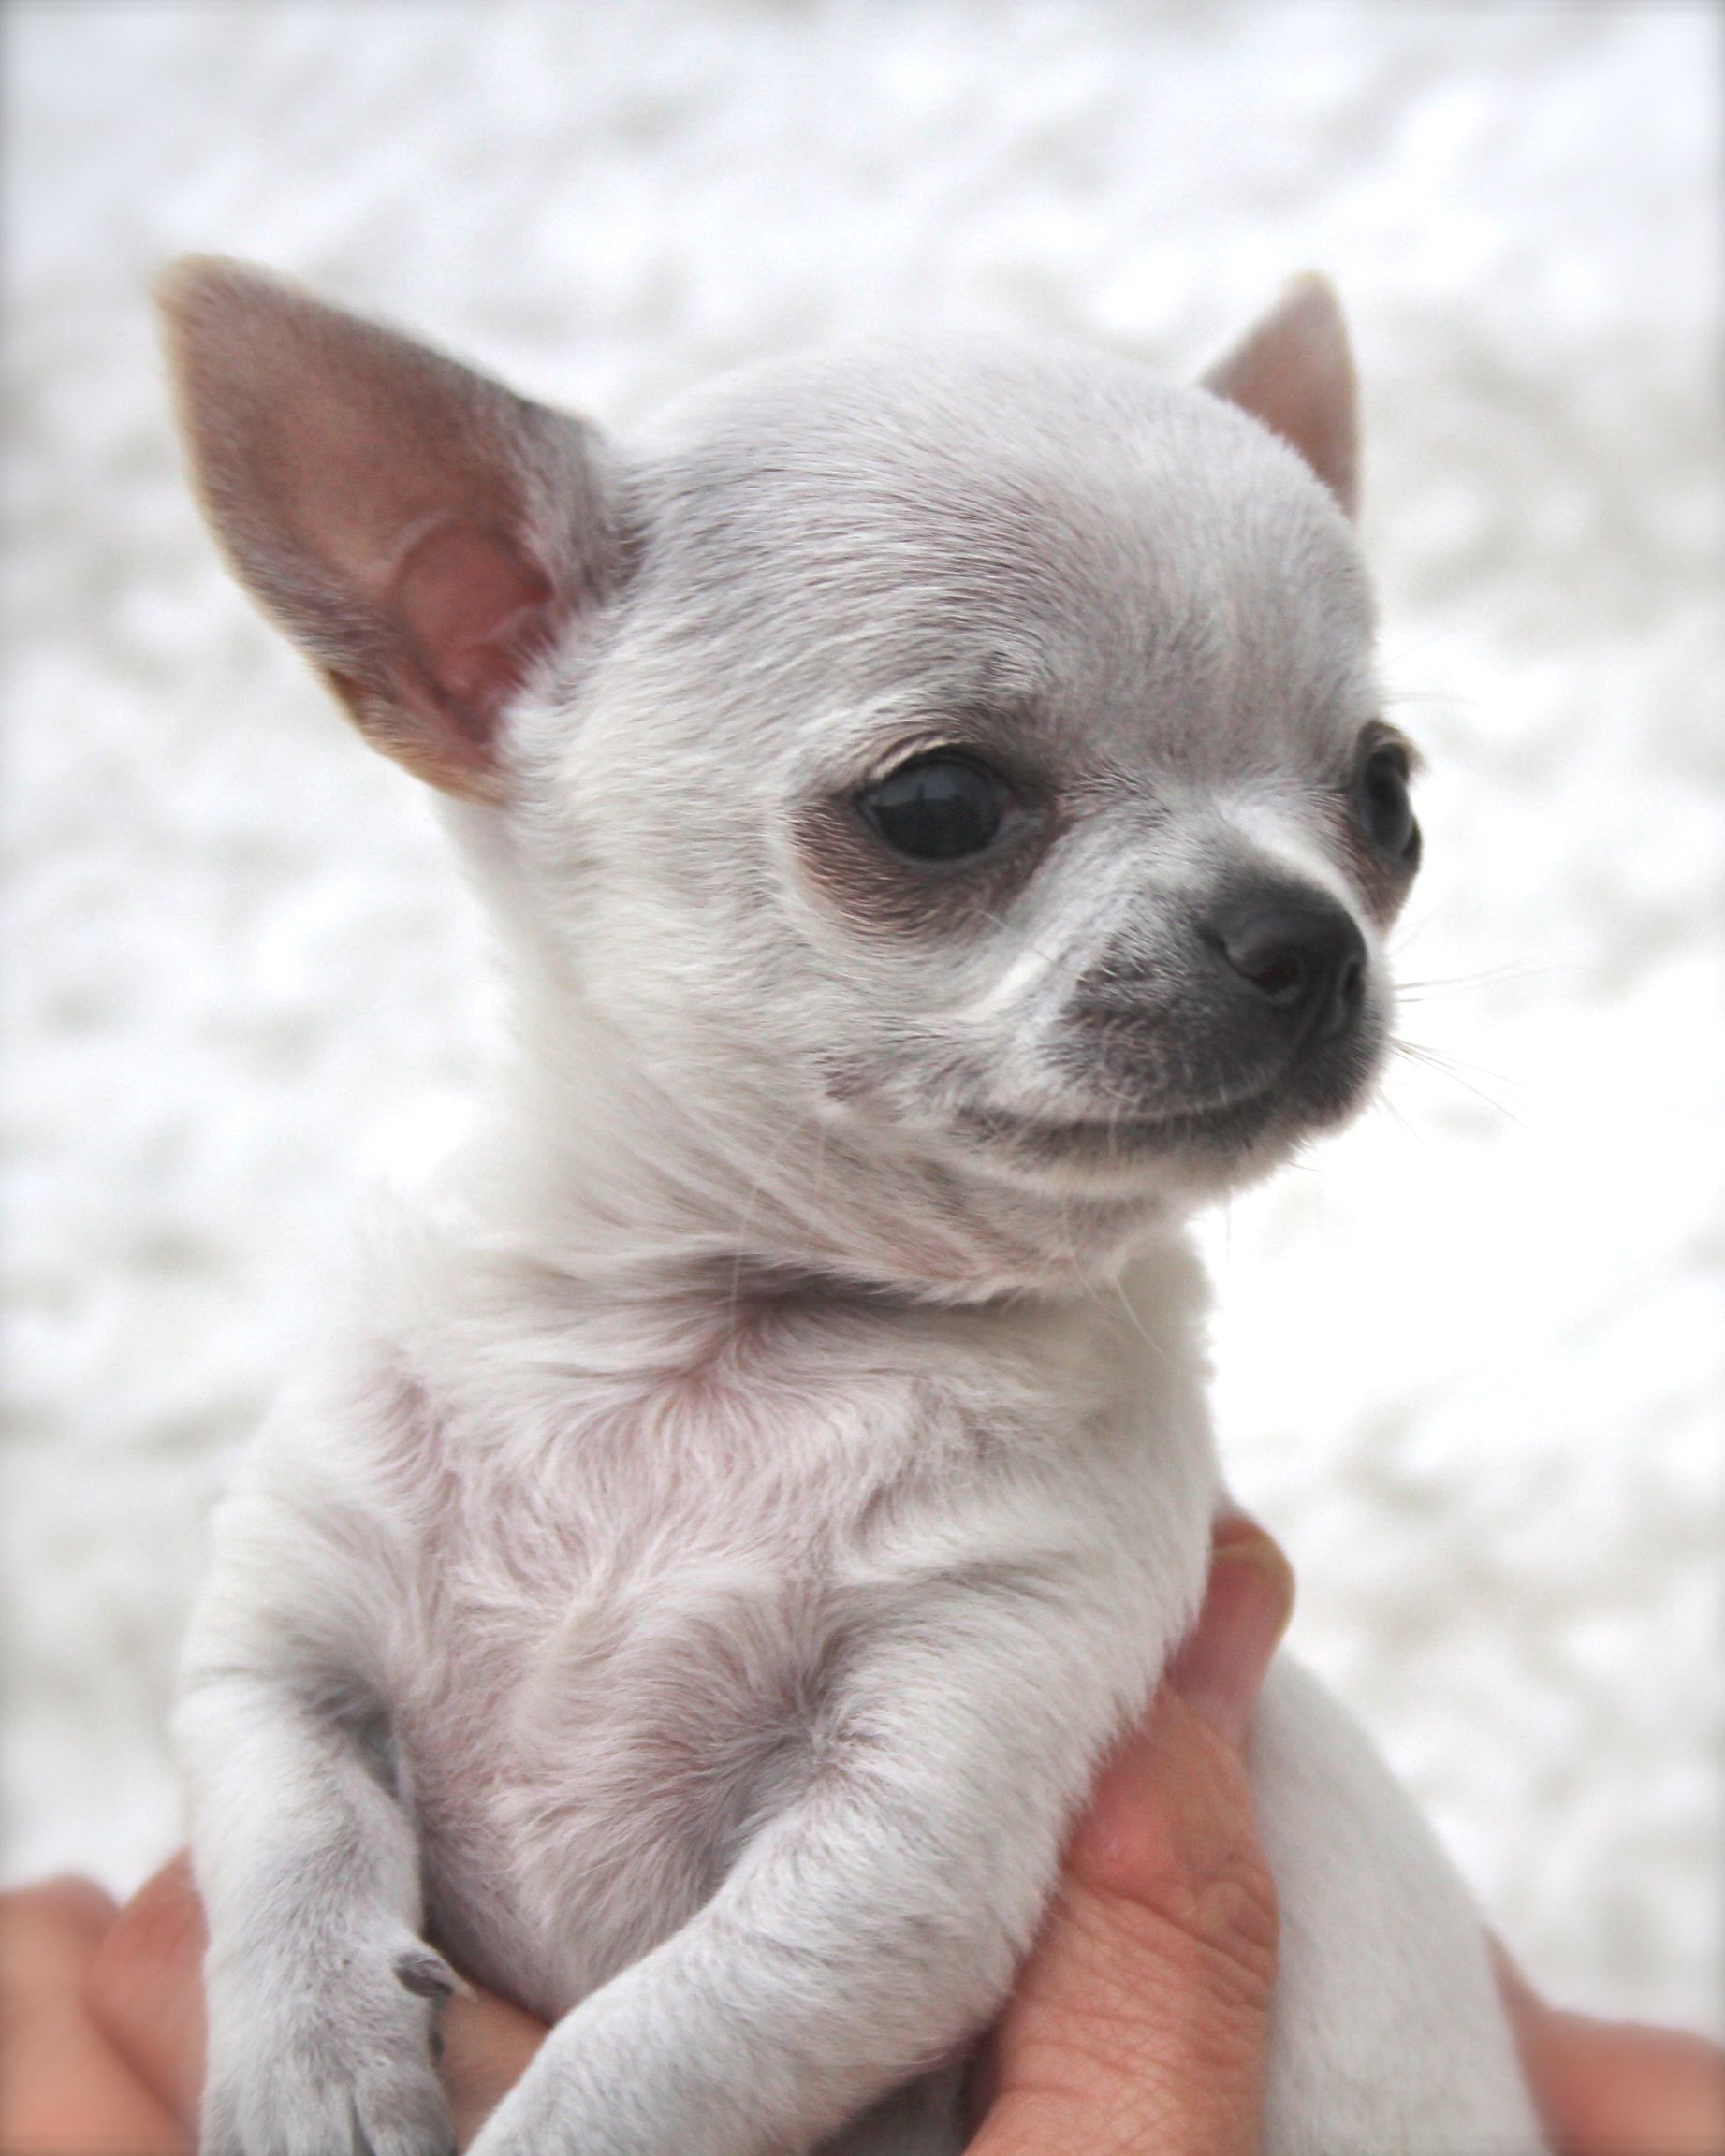 This Is Puppy We Were Going To Sell Her Which Was Why We Didn T Name Her But As She Was So Small Decided To Chihuahua Puppies Cute Chihuahua Cute Small Animals